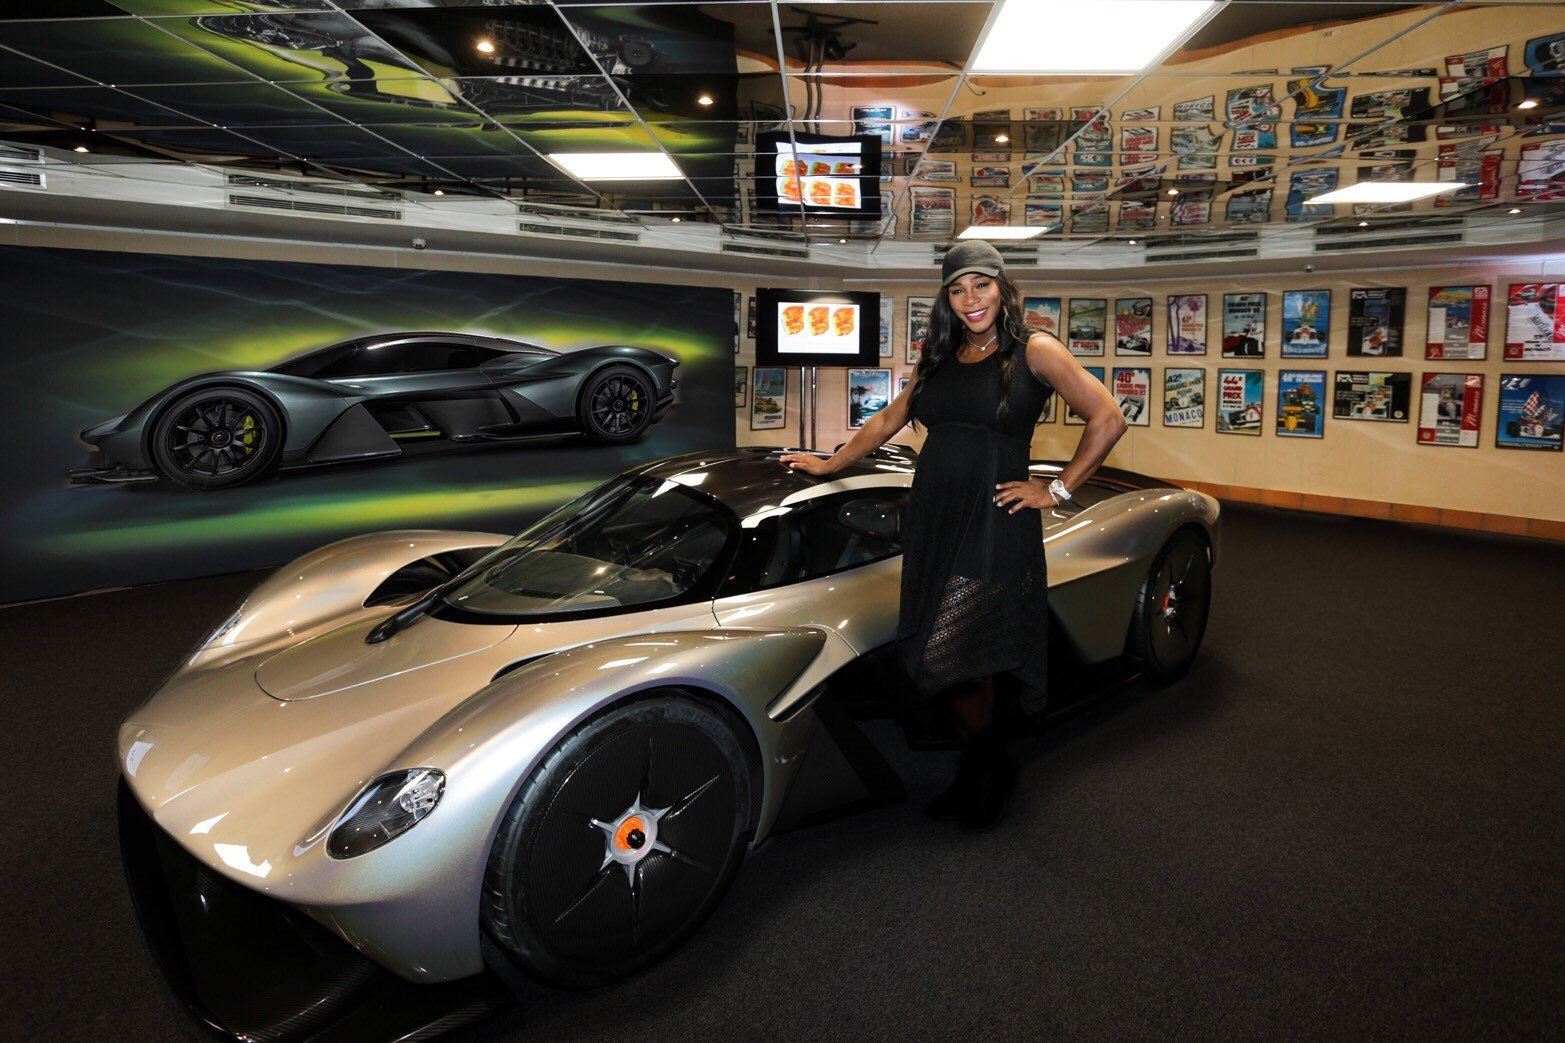 Serena Williams Stands Next To The Production Aston Martin Valkyrie